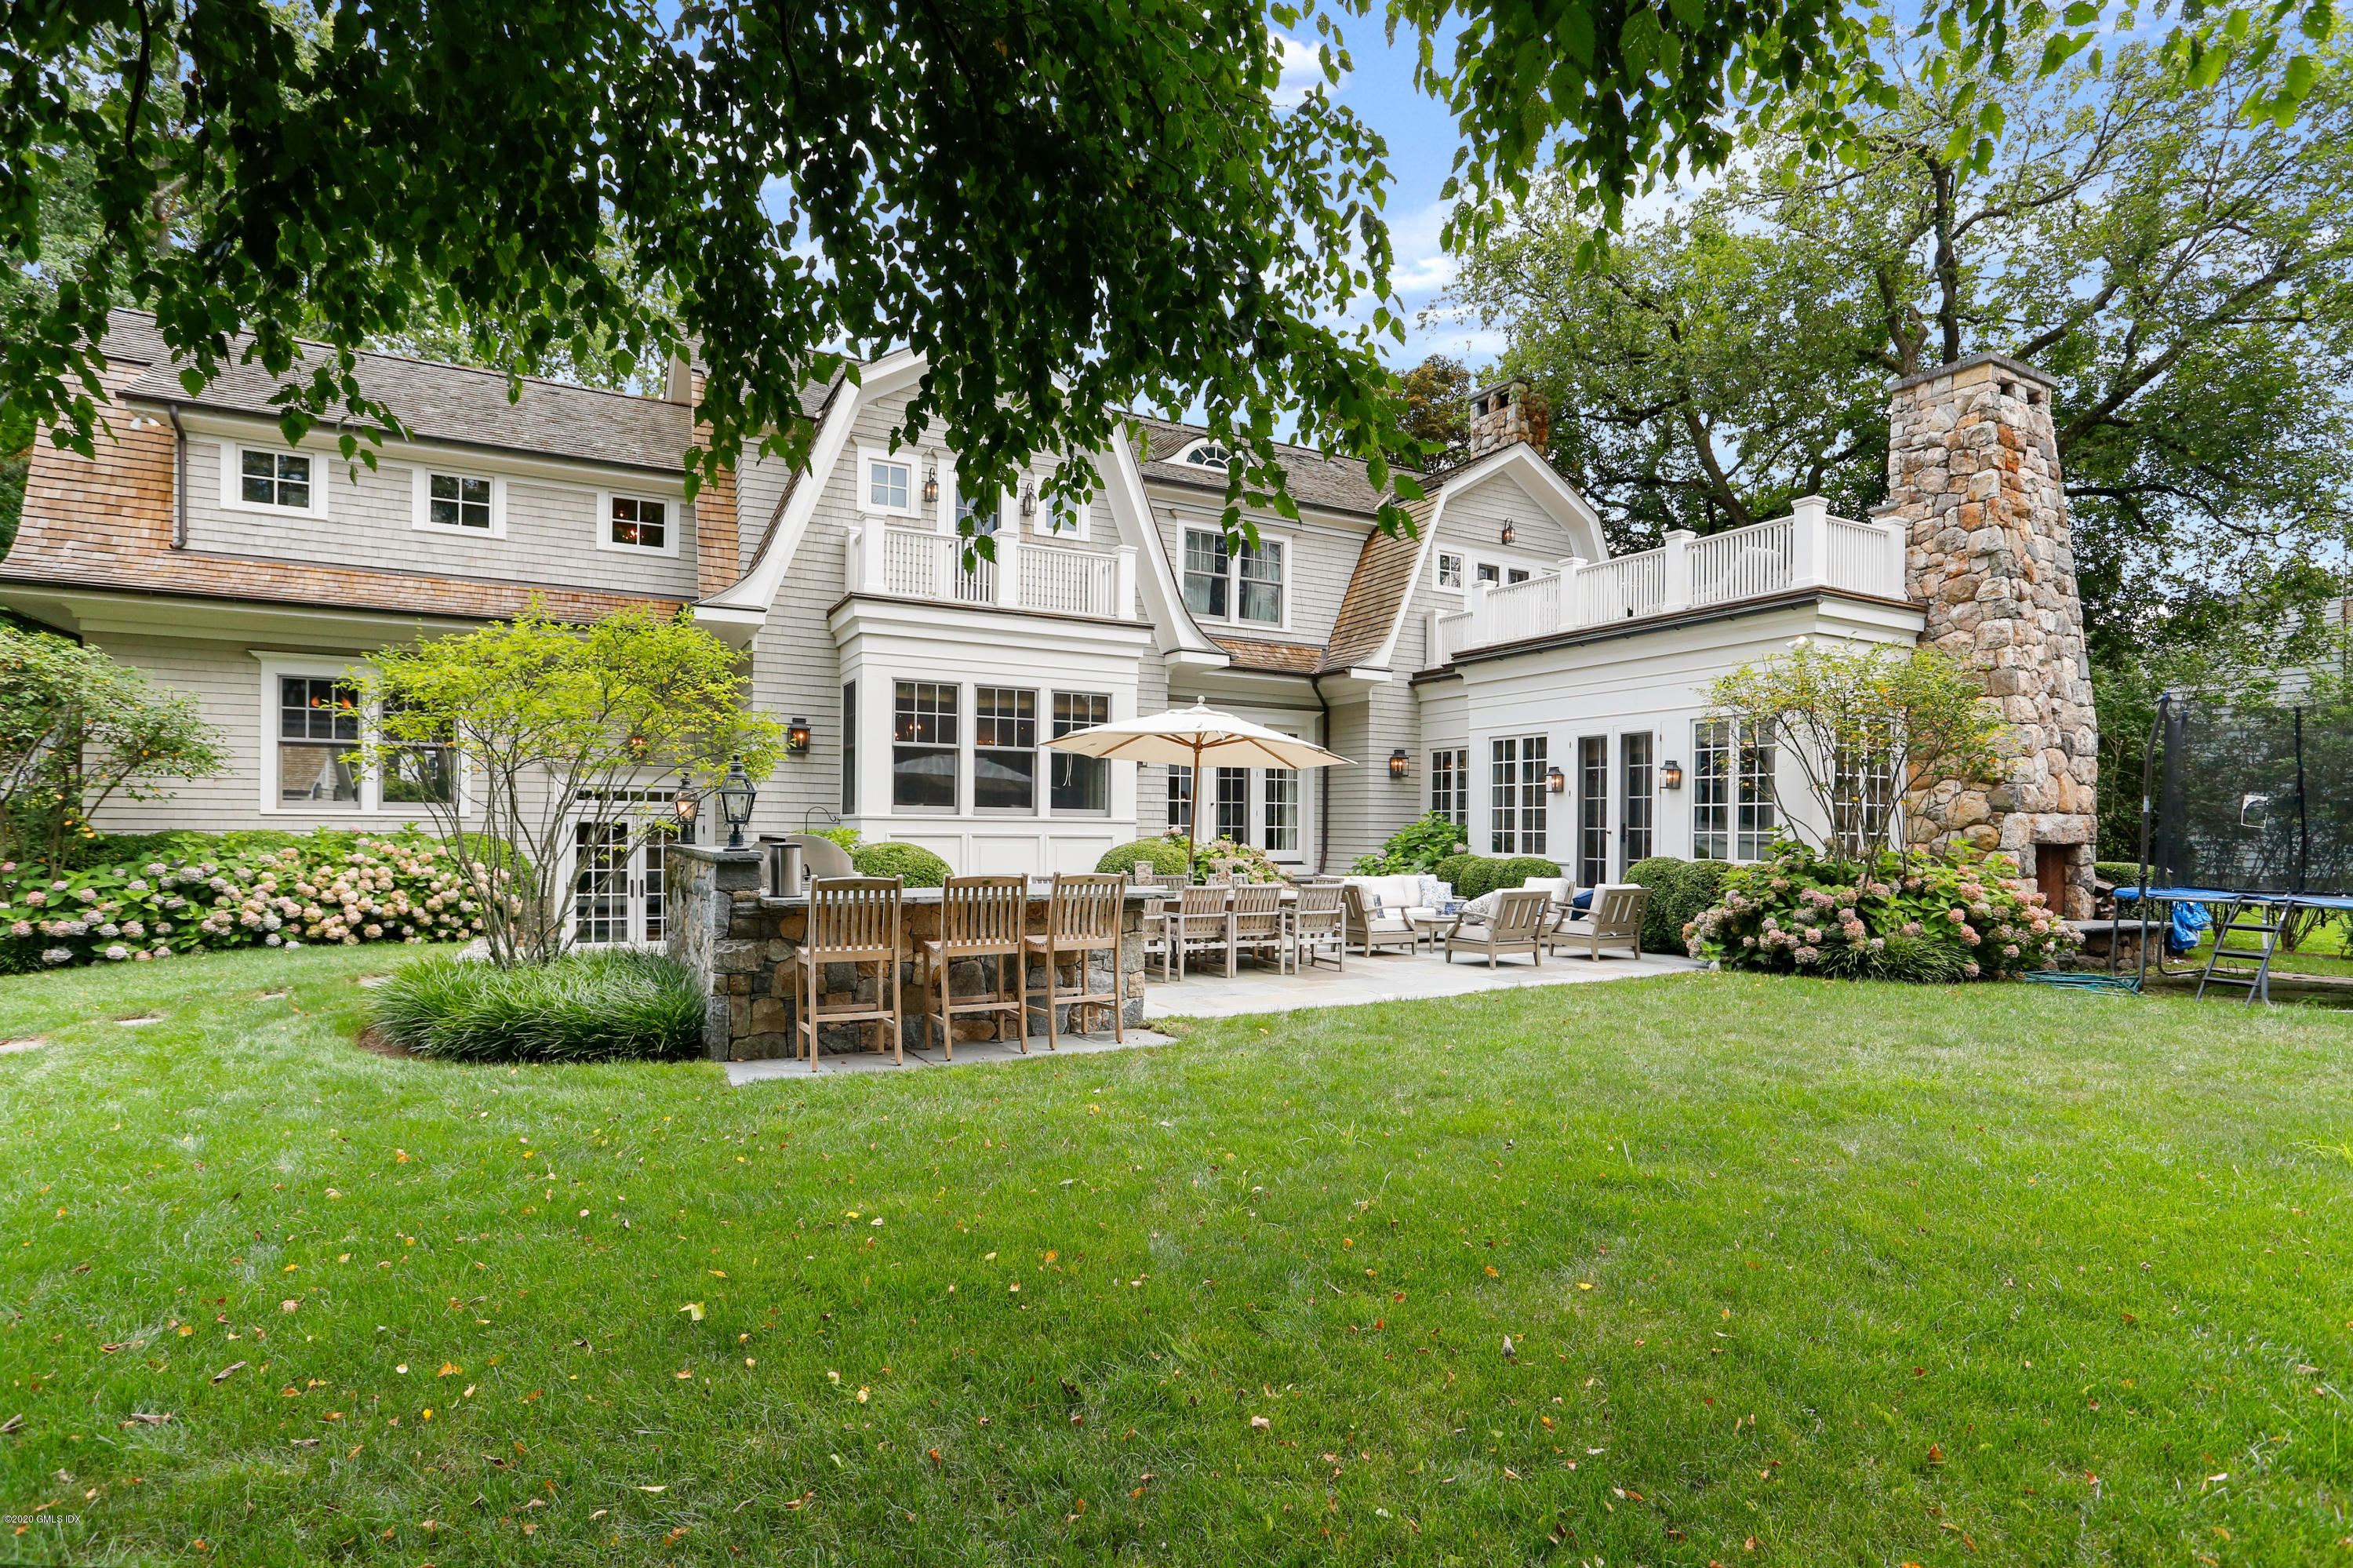 47 Shore Road, Old Greenwich, Connecticut 06870, 8 Bedrooms Bedrooms, ,6 BathroomsBathrooms,Single family,For Rent,Shore,110730